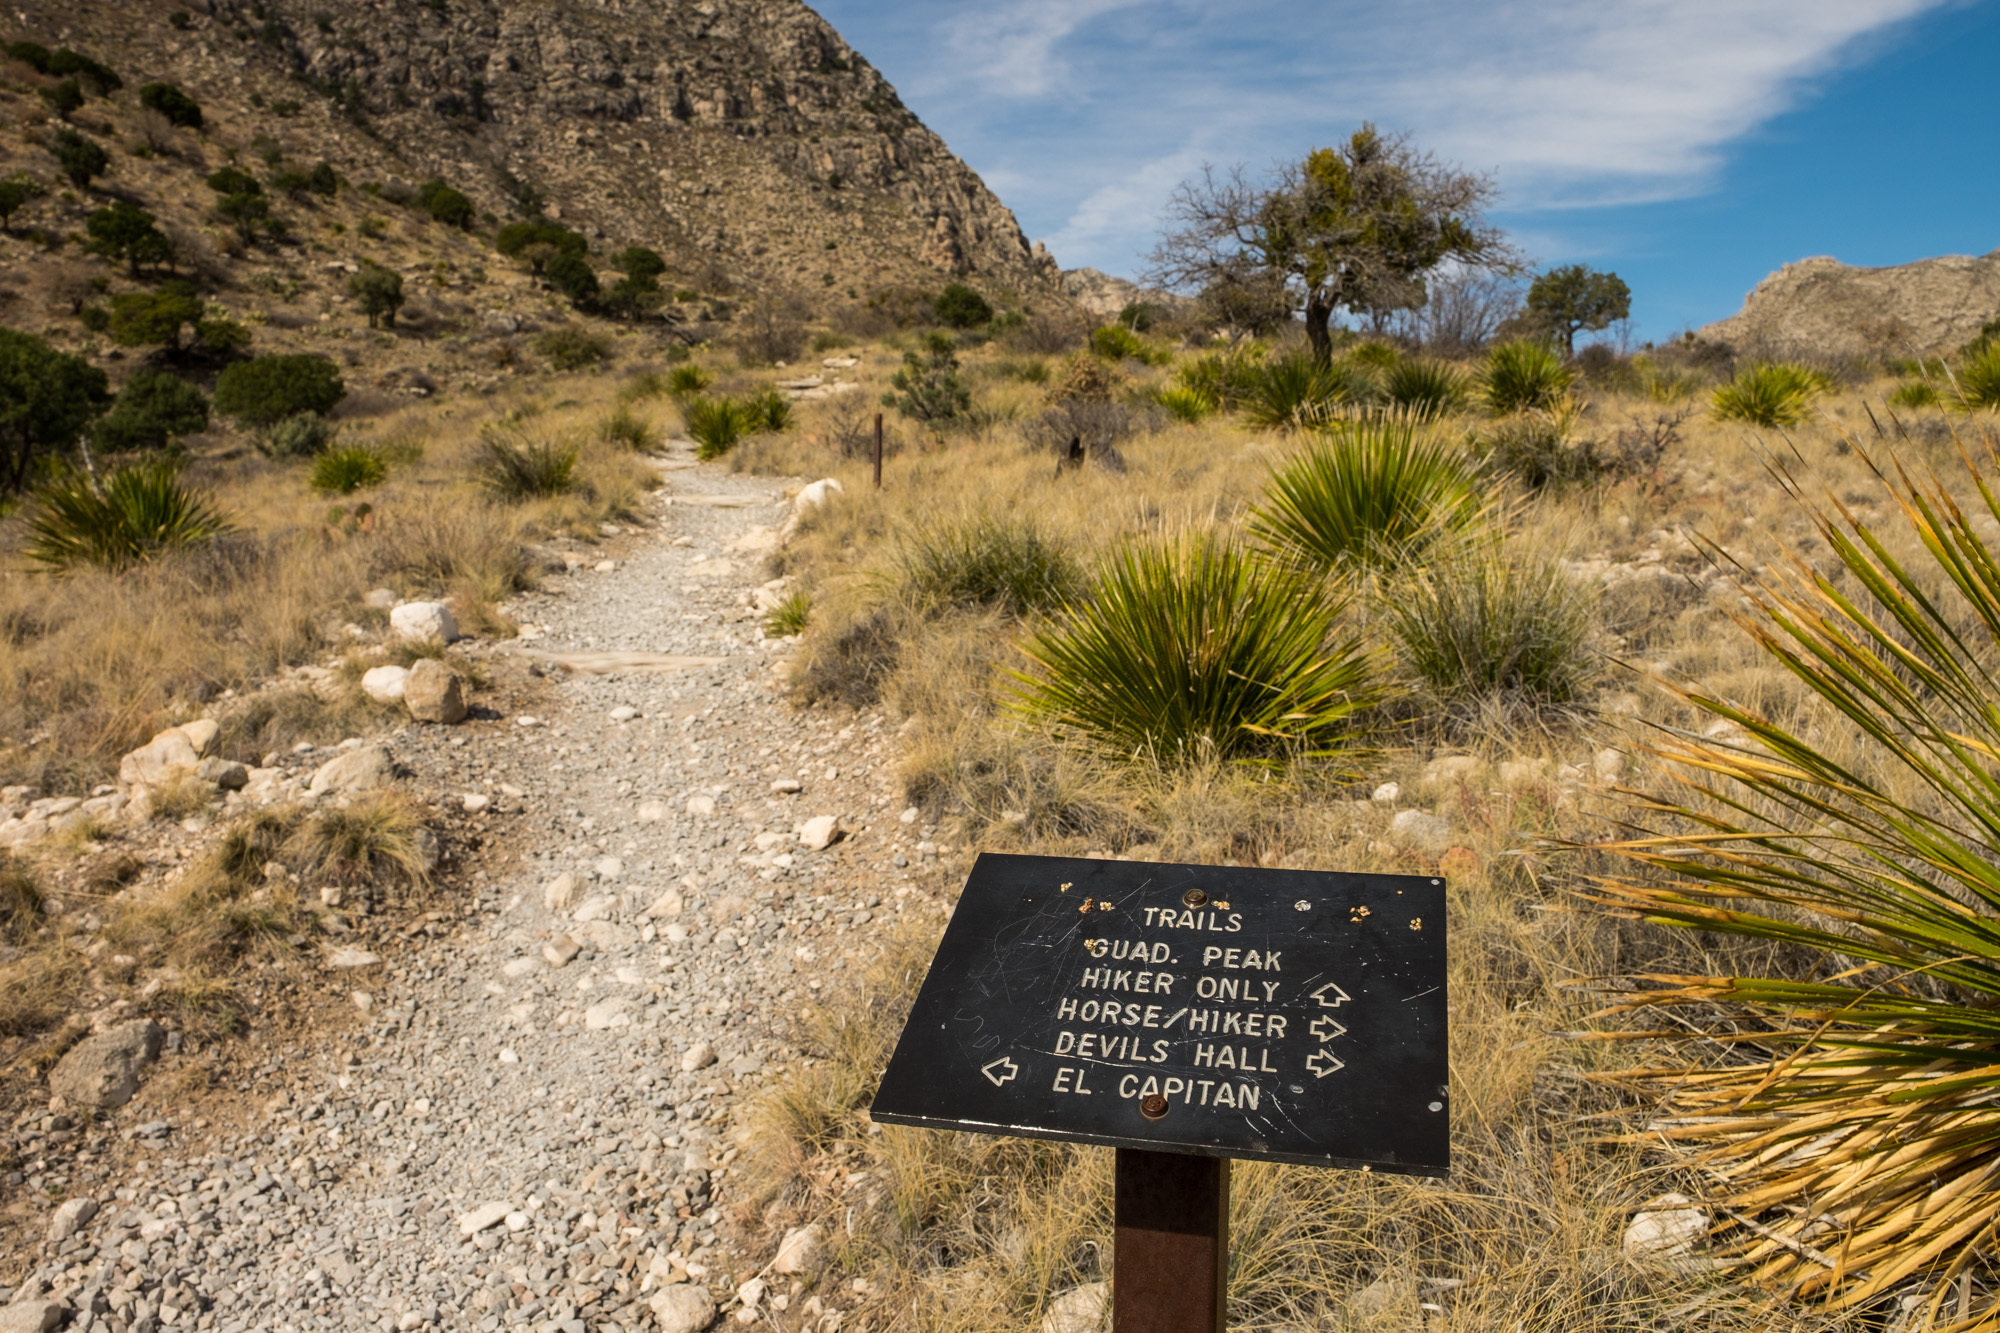 Trailhead signs lead the way.